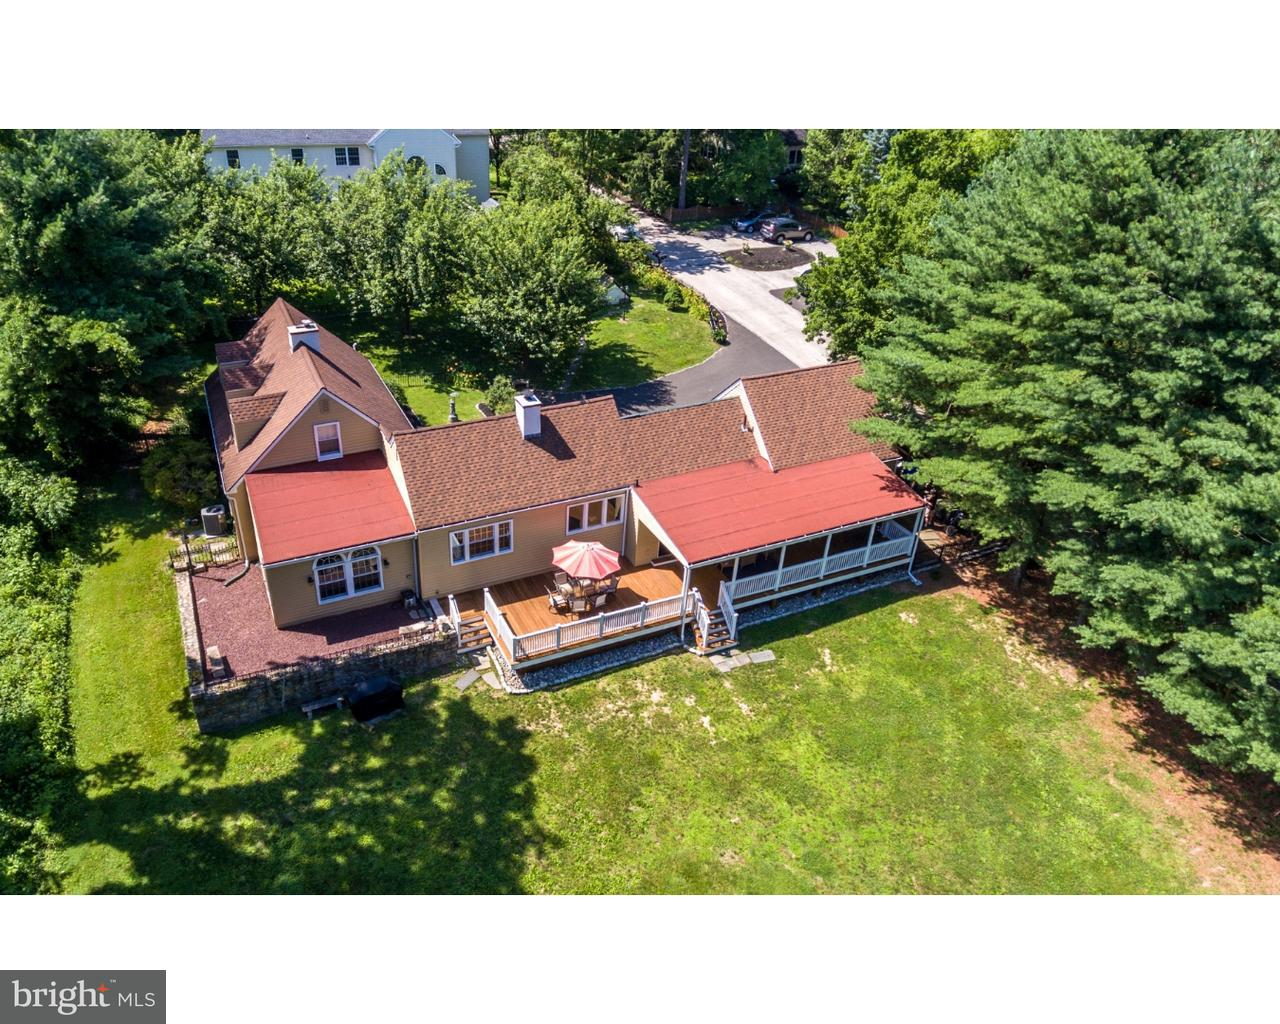 1900 JOHNSON RD, PLYMOUTH MEETING - Listed at $624,900, PLYMOUTH MEETING